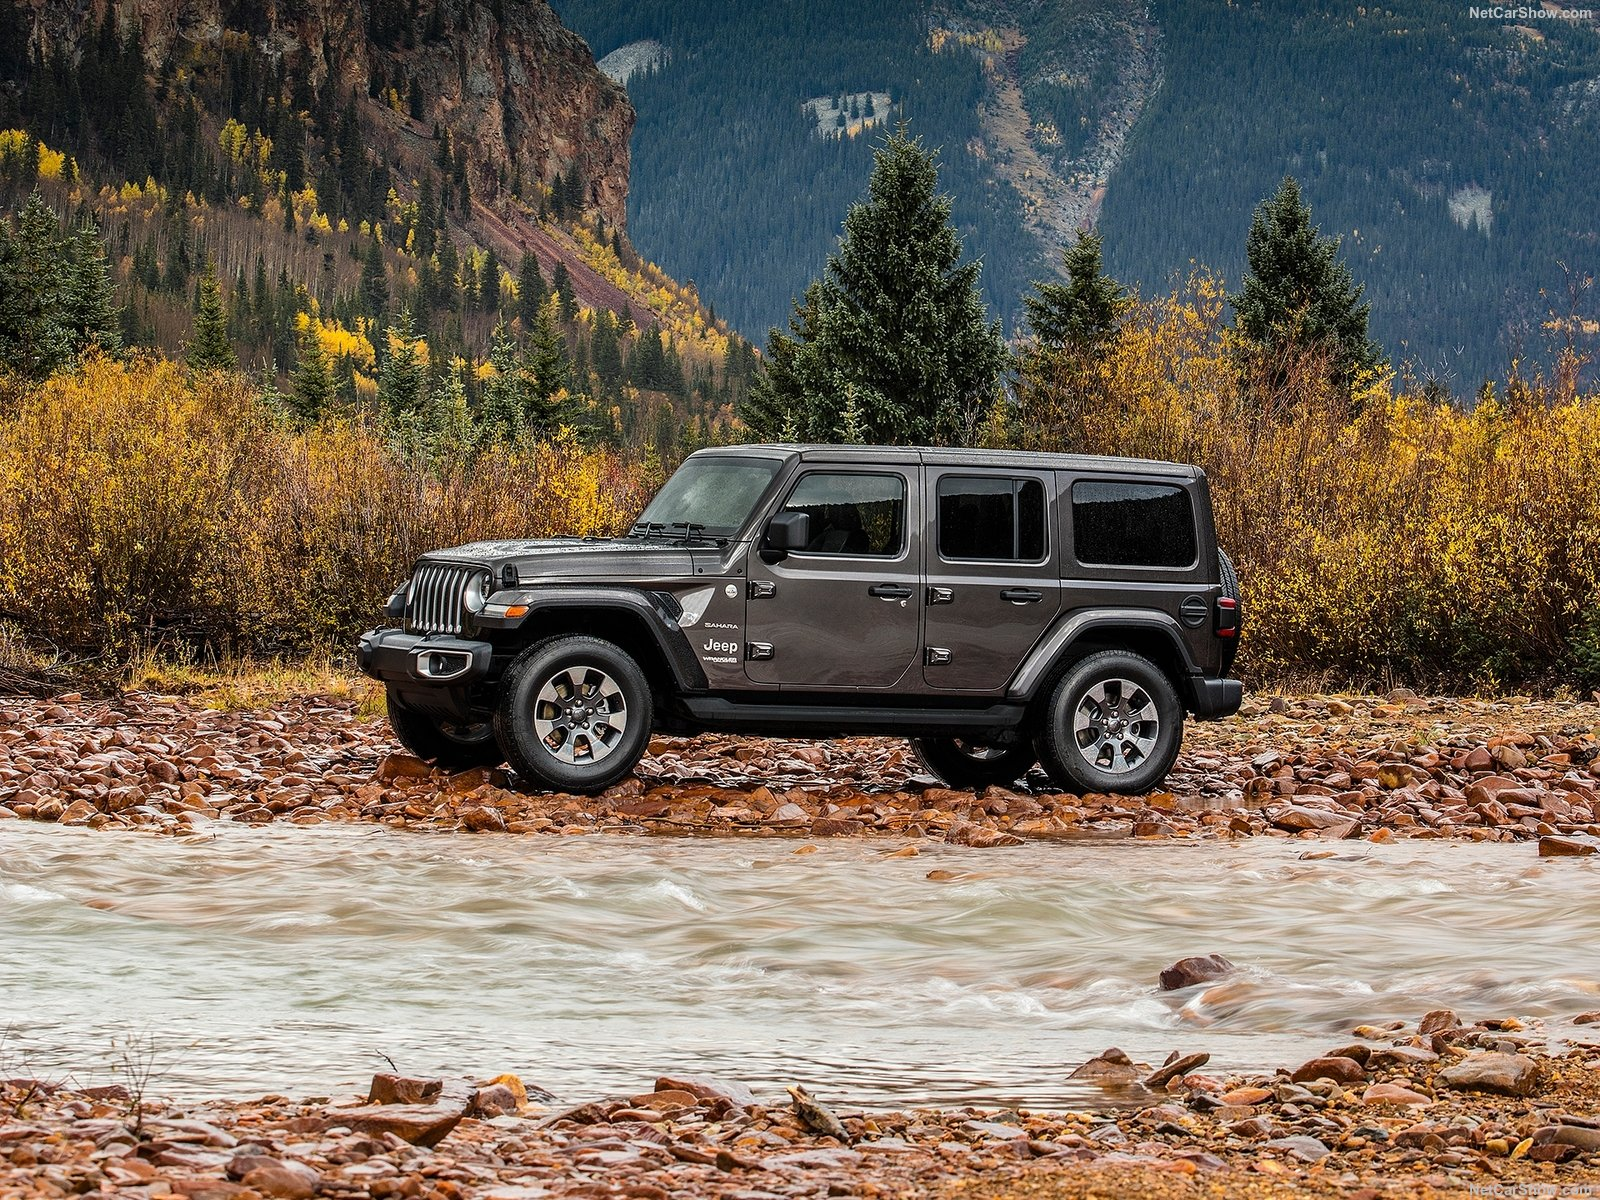 Jeep Wrangler Unlimited photo 184086